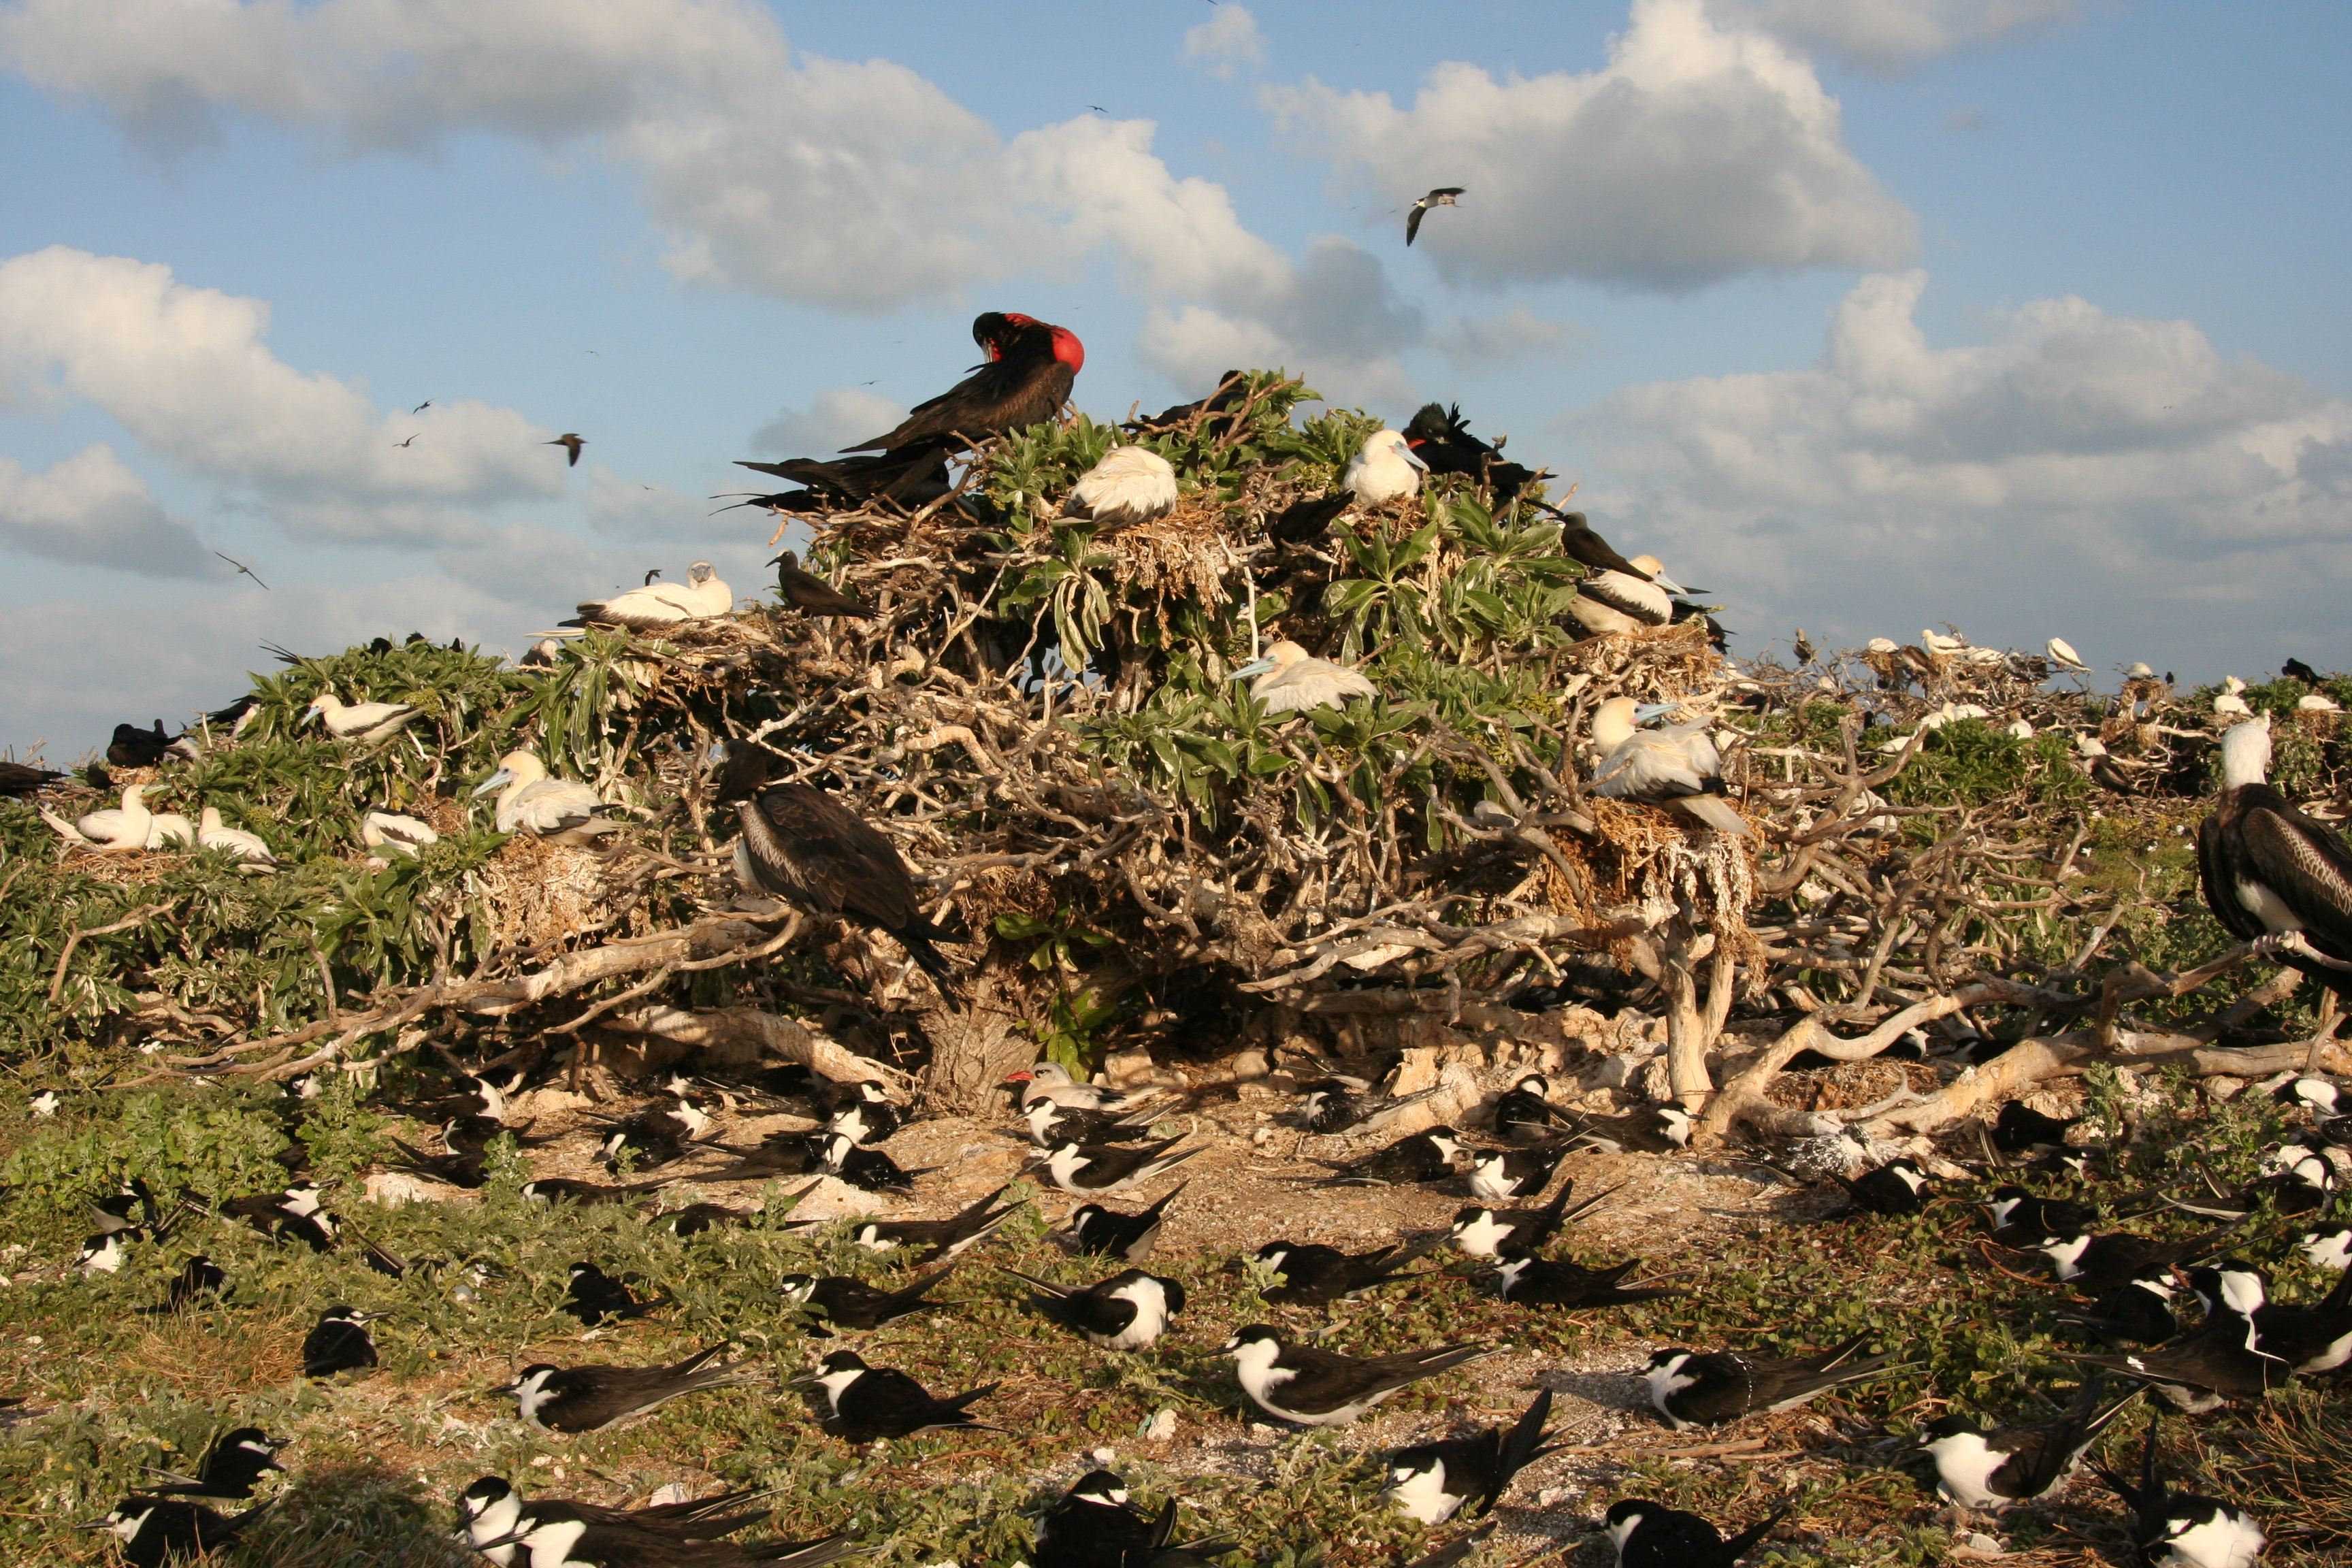 https://upload.wikimedia.org/wikipedia/commons/5/52/Seabird_colony.JPG